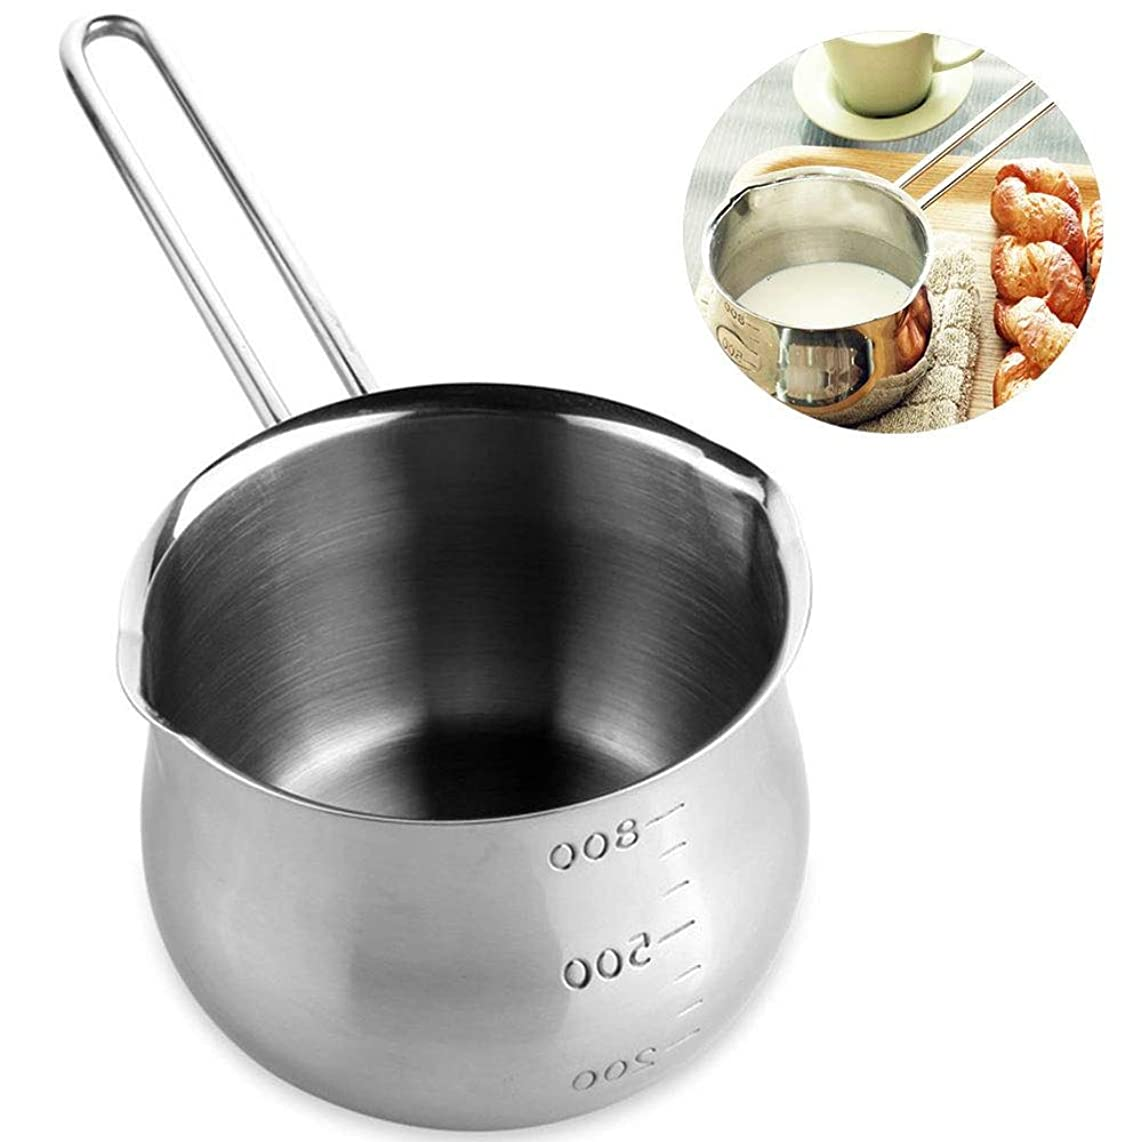 POIUCVXC 1Pc Stainless Steel Non-Stick Saucepan Flat Bottom Induction Cooker Soup Milk Pan 12cm